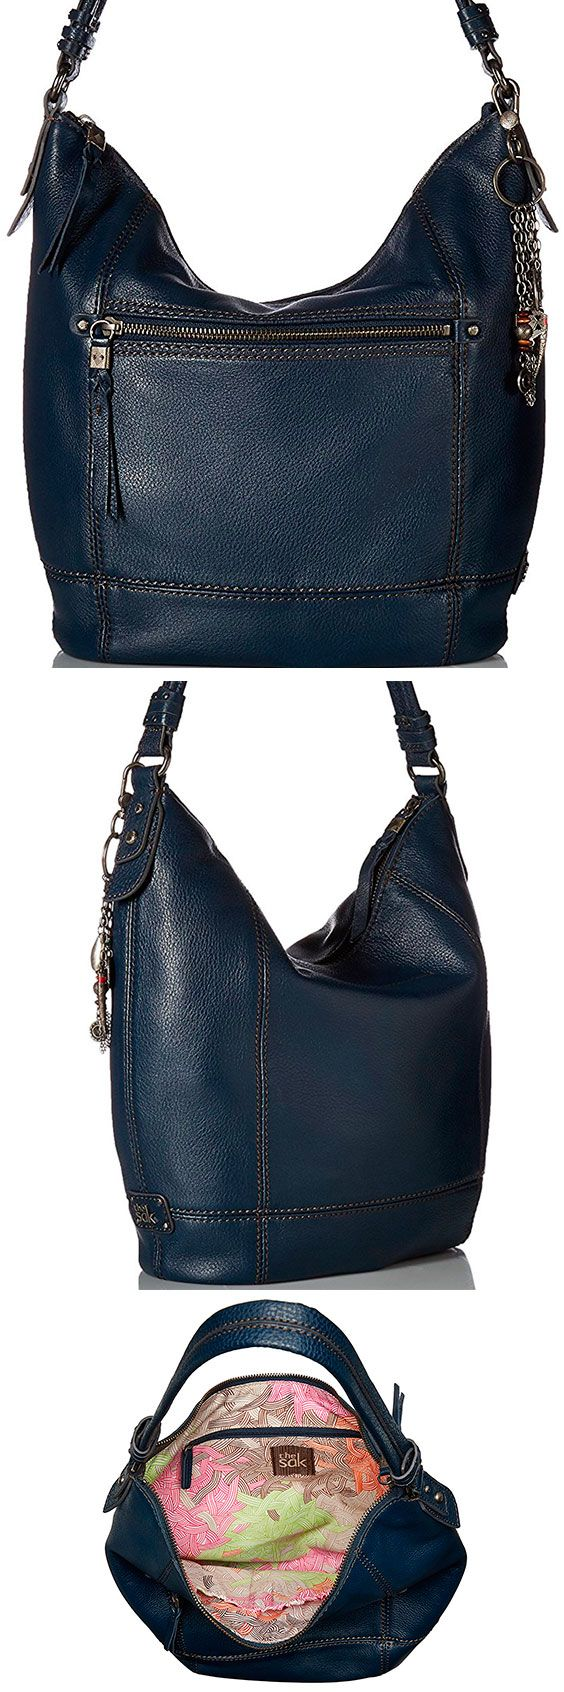 The Sak Sequoia Hobo Bag – Best Large Leather Hobo Shoulder Bag The Sequoia lives up to its namesake and comes in at a relatively large, inexpensive shoulder bag. With 11 styles to choose from, the right person will love the oversized design. #TheSAK #Leather #Baguette #Handbag #Hobo #ShoulderBag #Bag #Blue #Navy